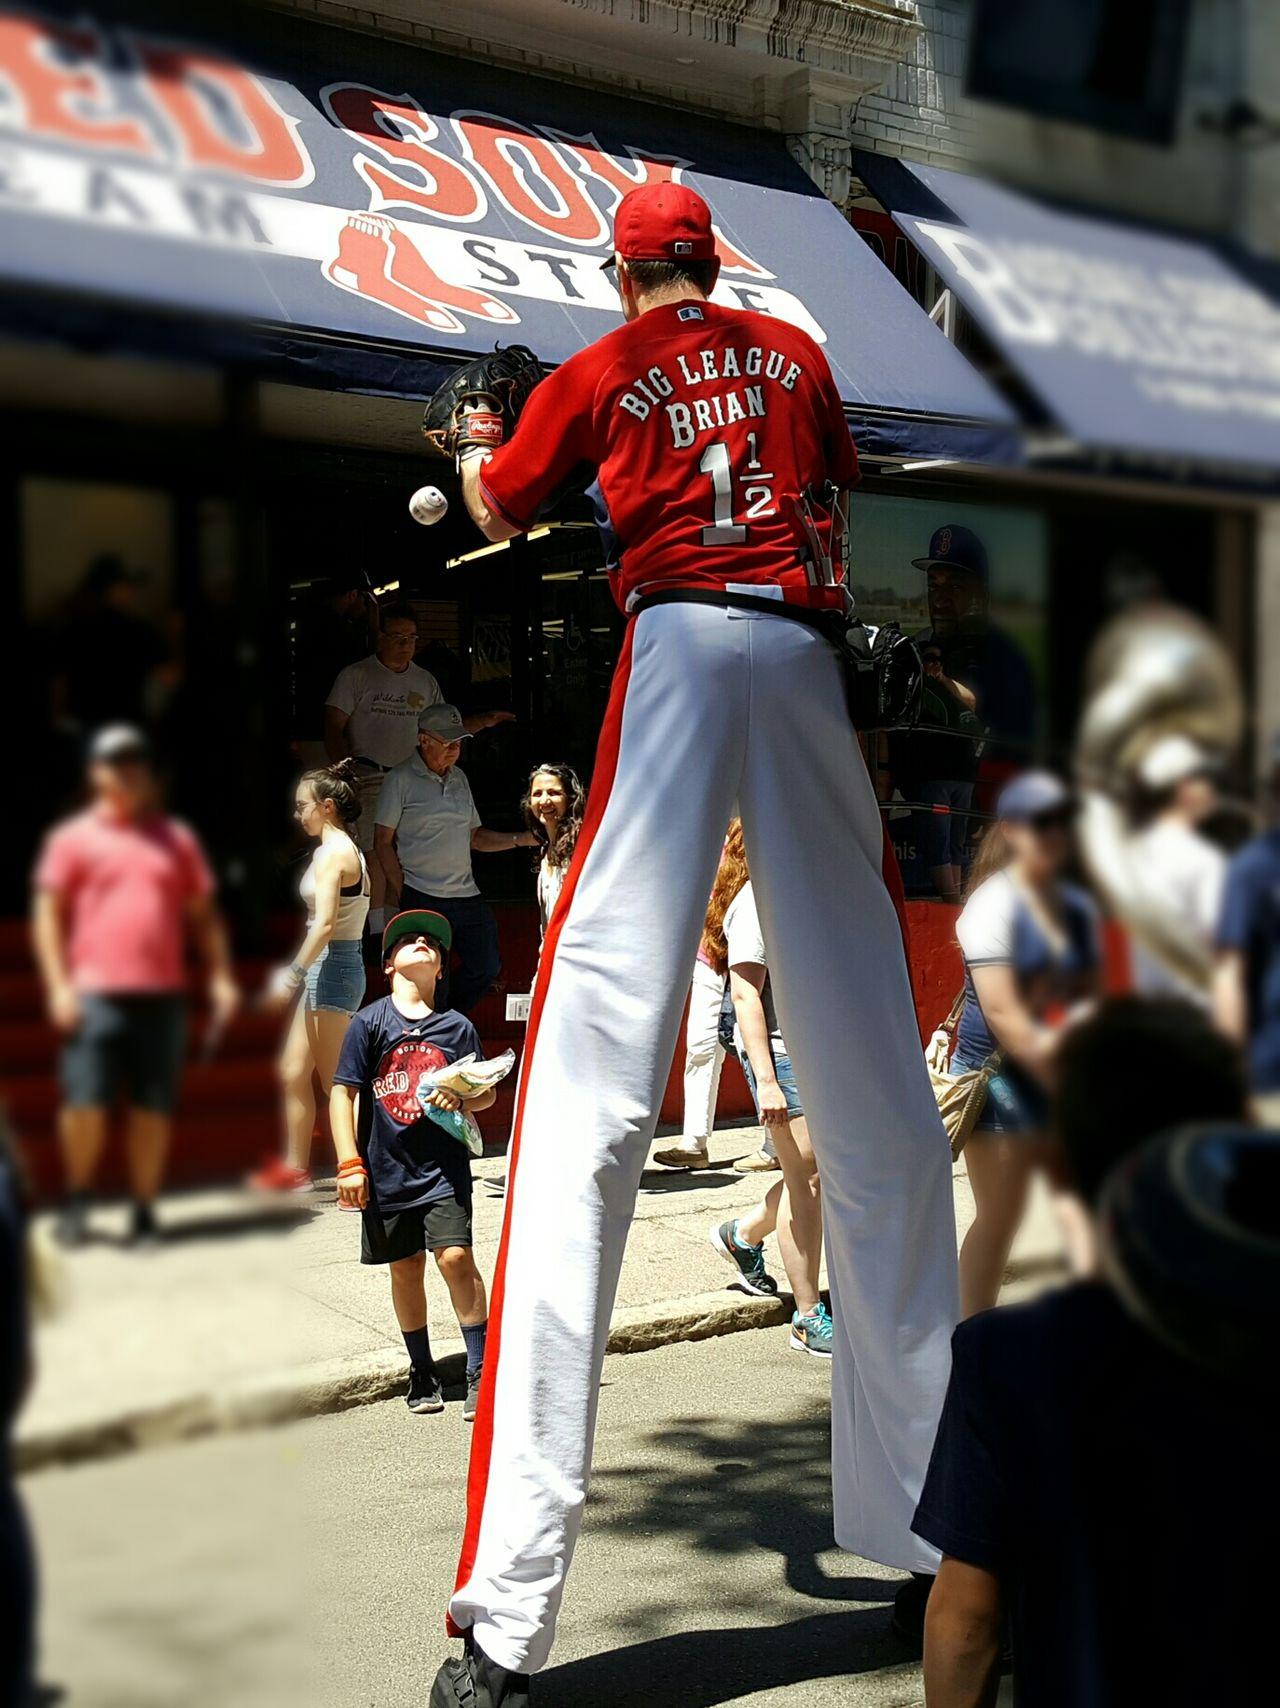 Outside Fenway Park Baseball - Sport Event Sidewalk View Pregame Activities Tall - High EyeEm Best Shots Live For The Story